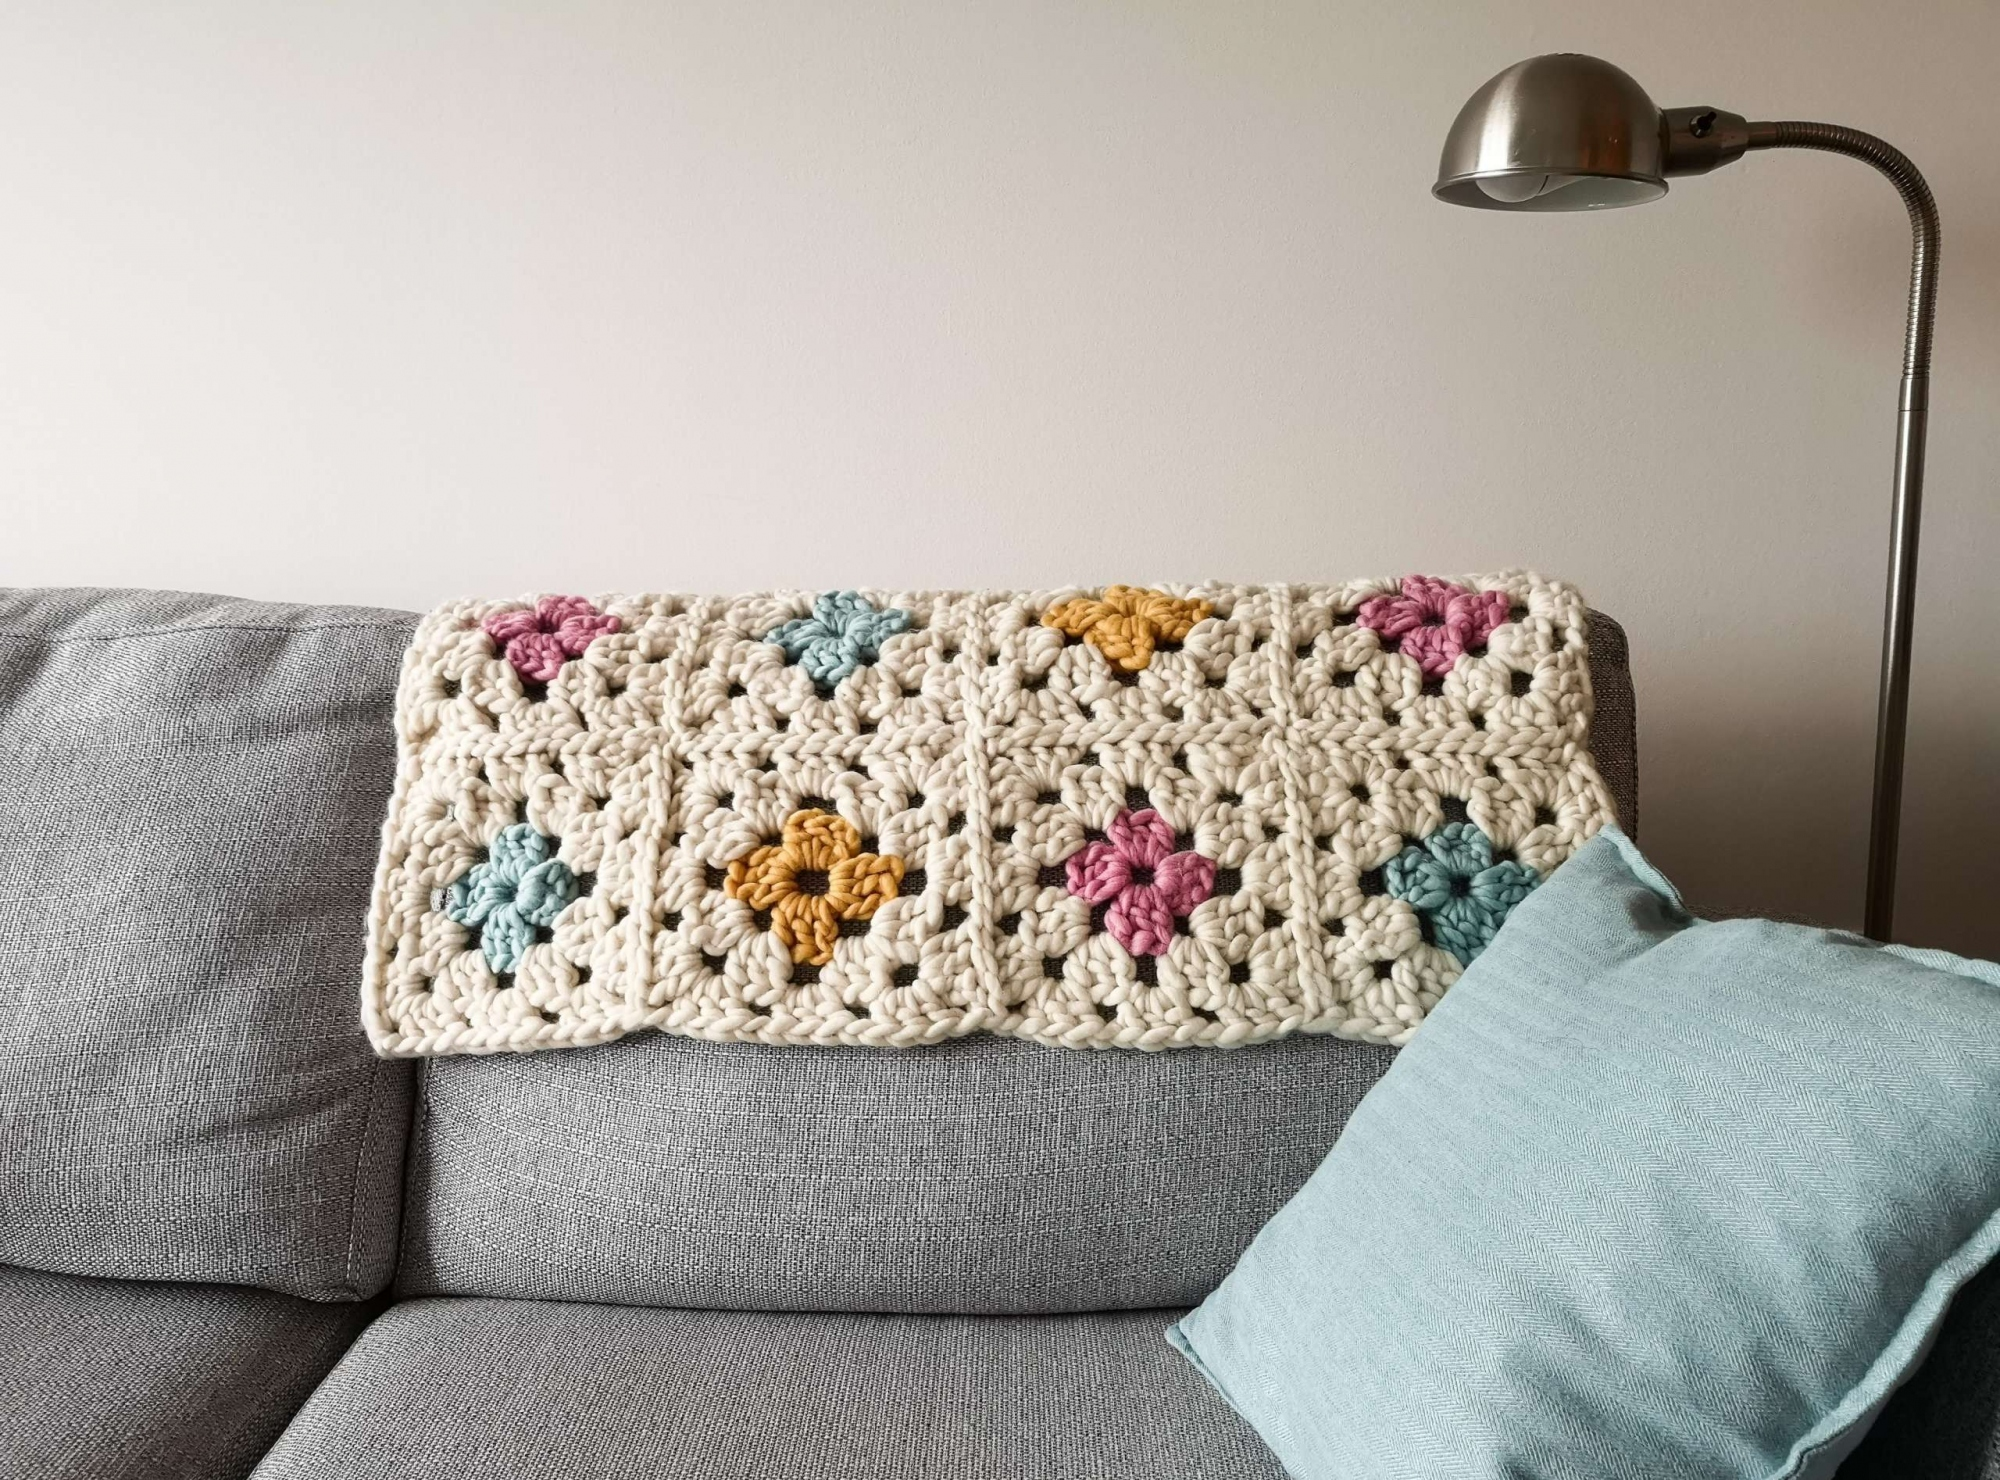 granny-square-crochet-blanket-off-the-wool